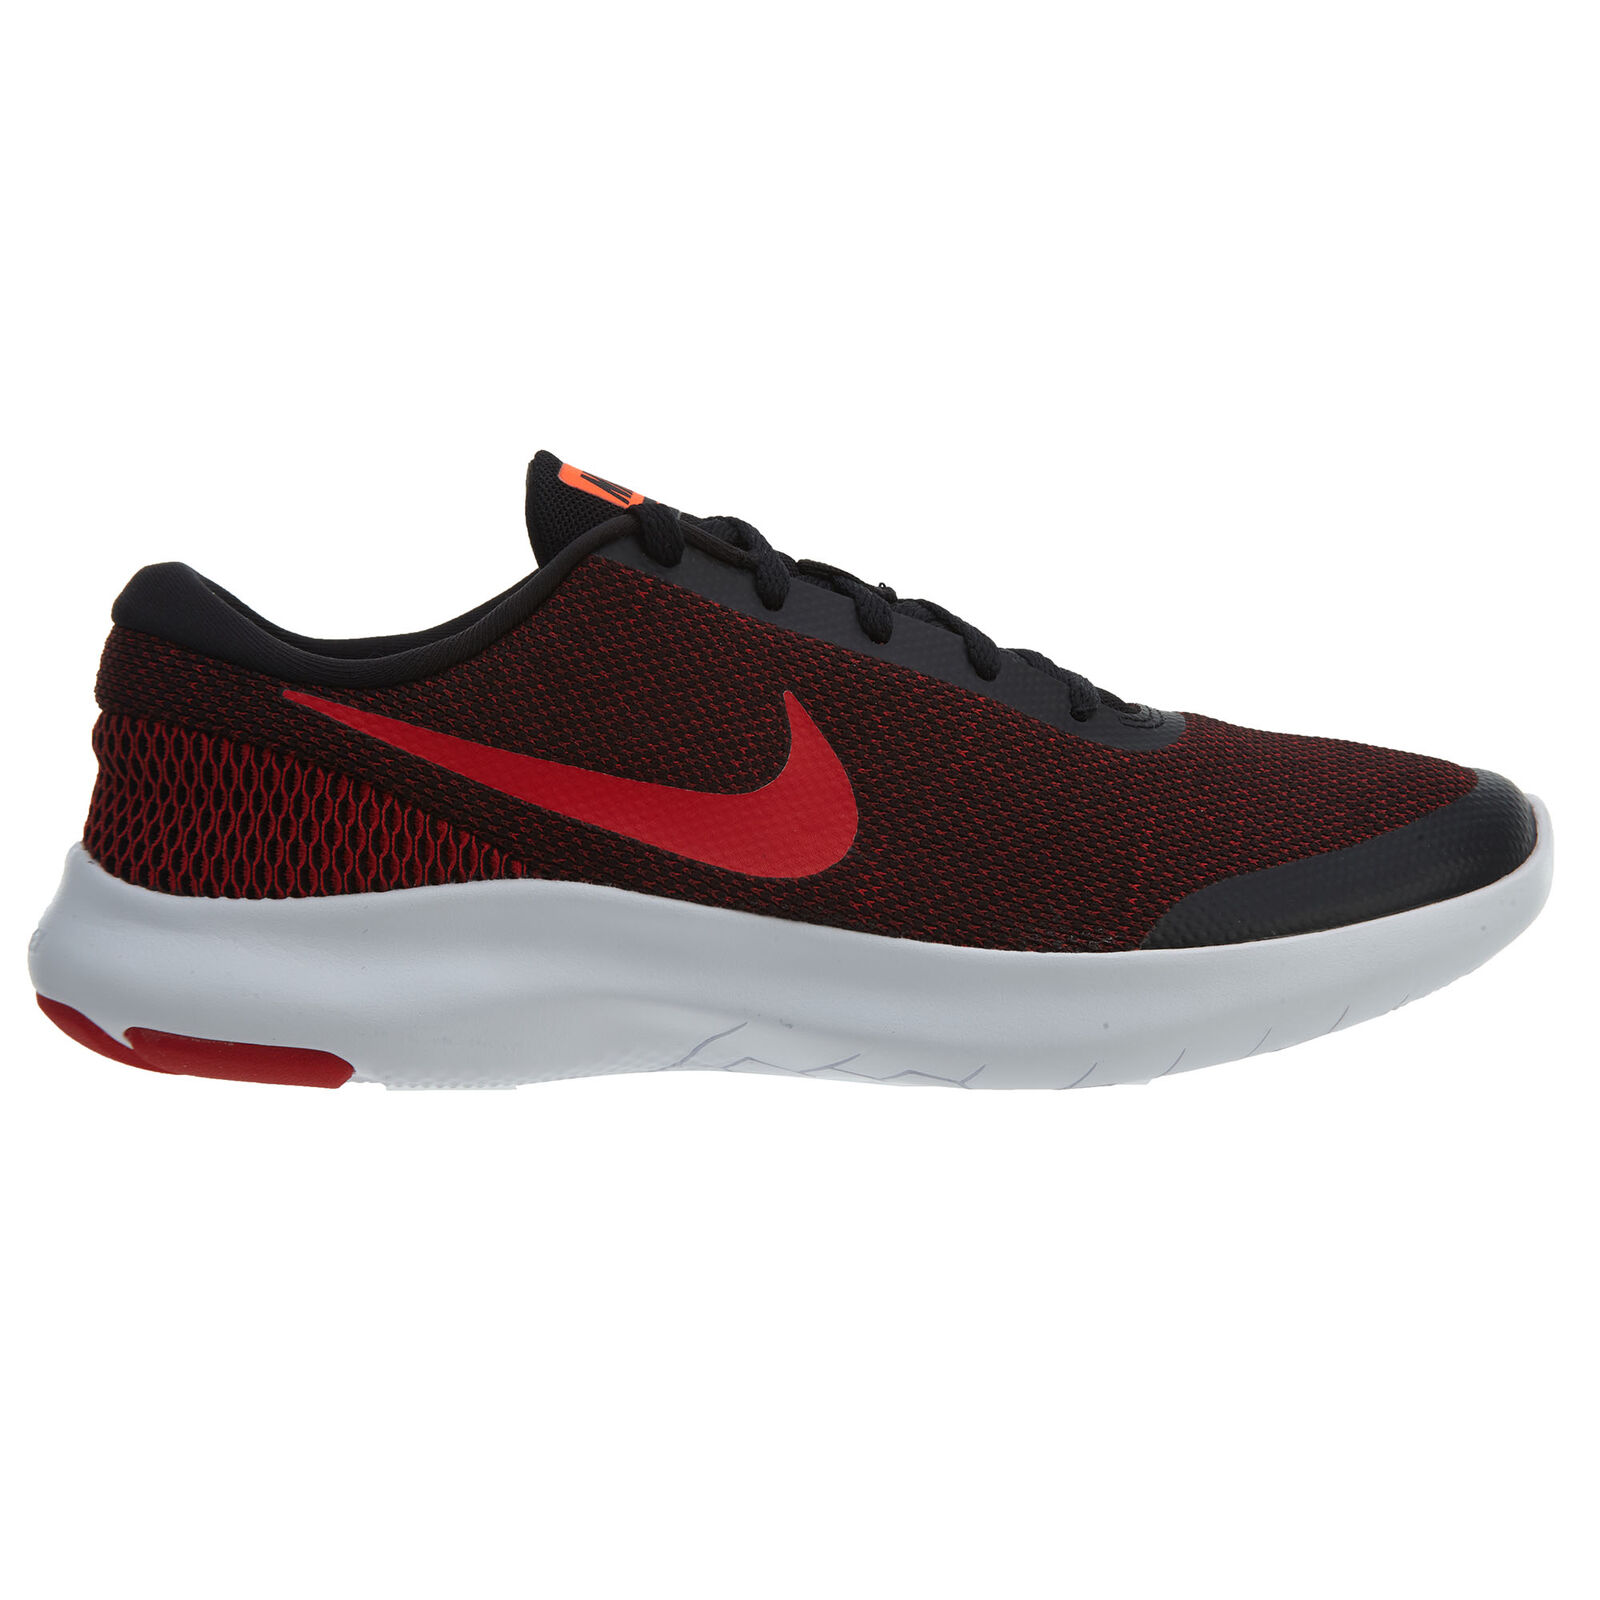 huge selection of 4c5d1 60952 Nike Flex Experience RN 7 Mens Mens Mens 908985-006 Black Gym Red Running  shoes